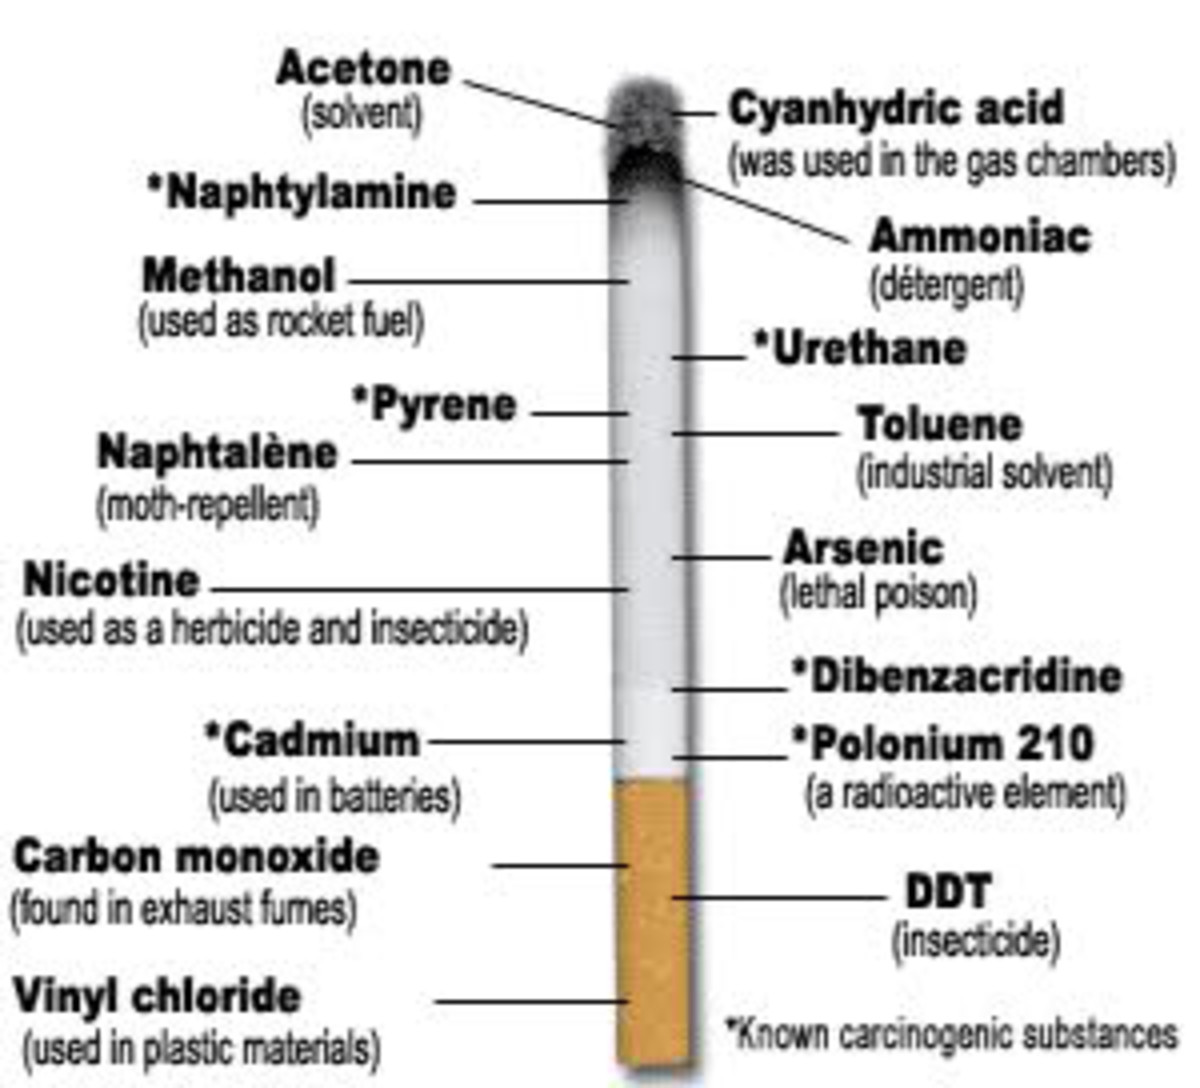 Some of the component found in cigarettes including polonium 210